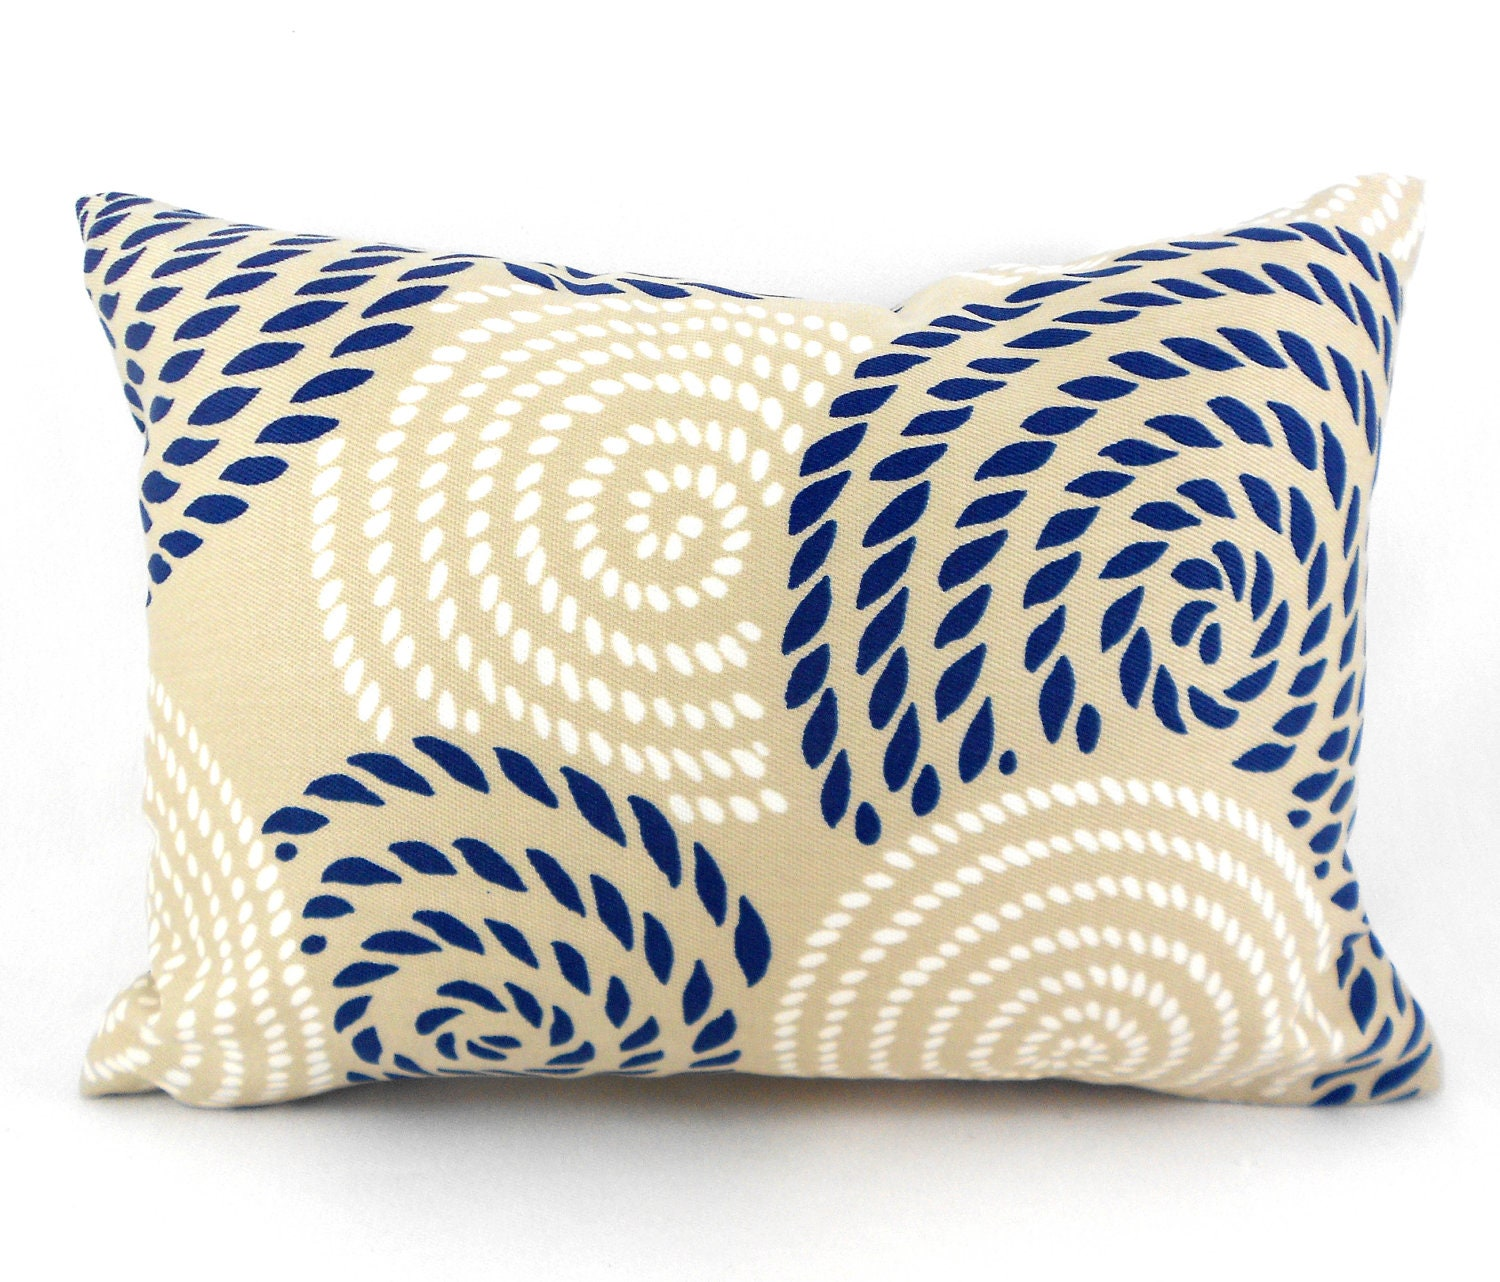 Decorative Outdoor Pillow Covers : Outdoor Lumbar Pillow Cover ANY SIZE Decorative by MyPillowStudio